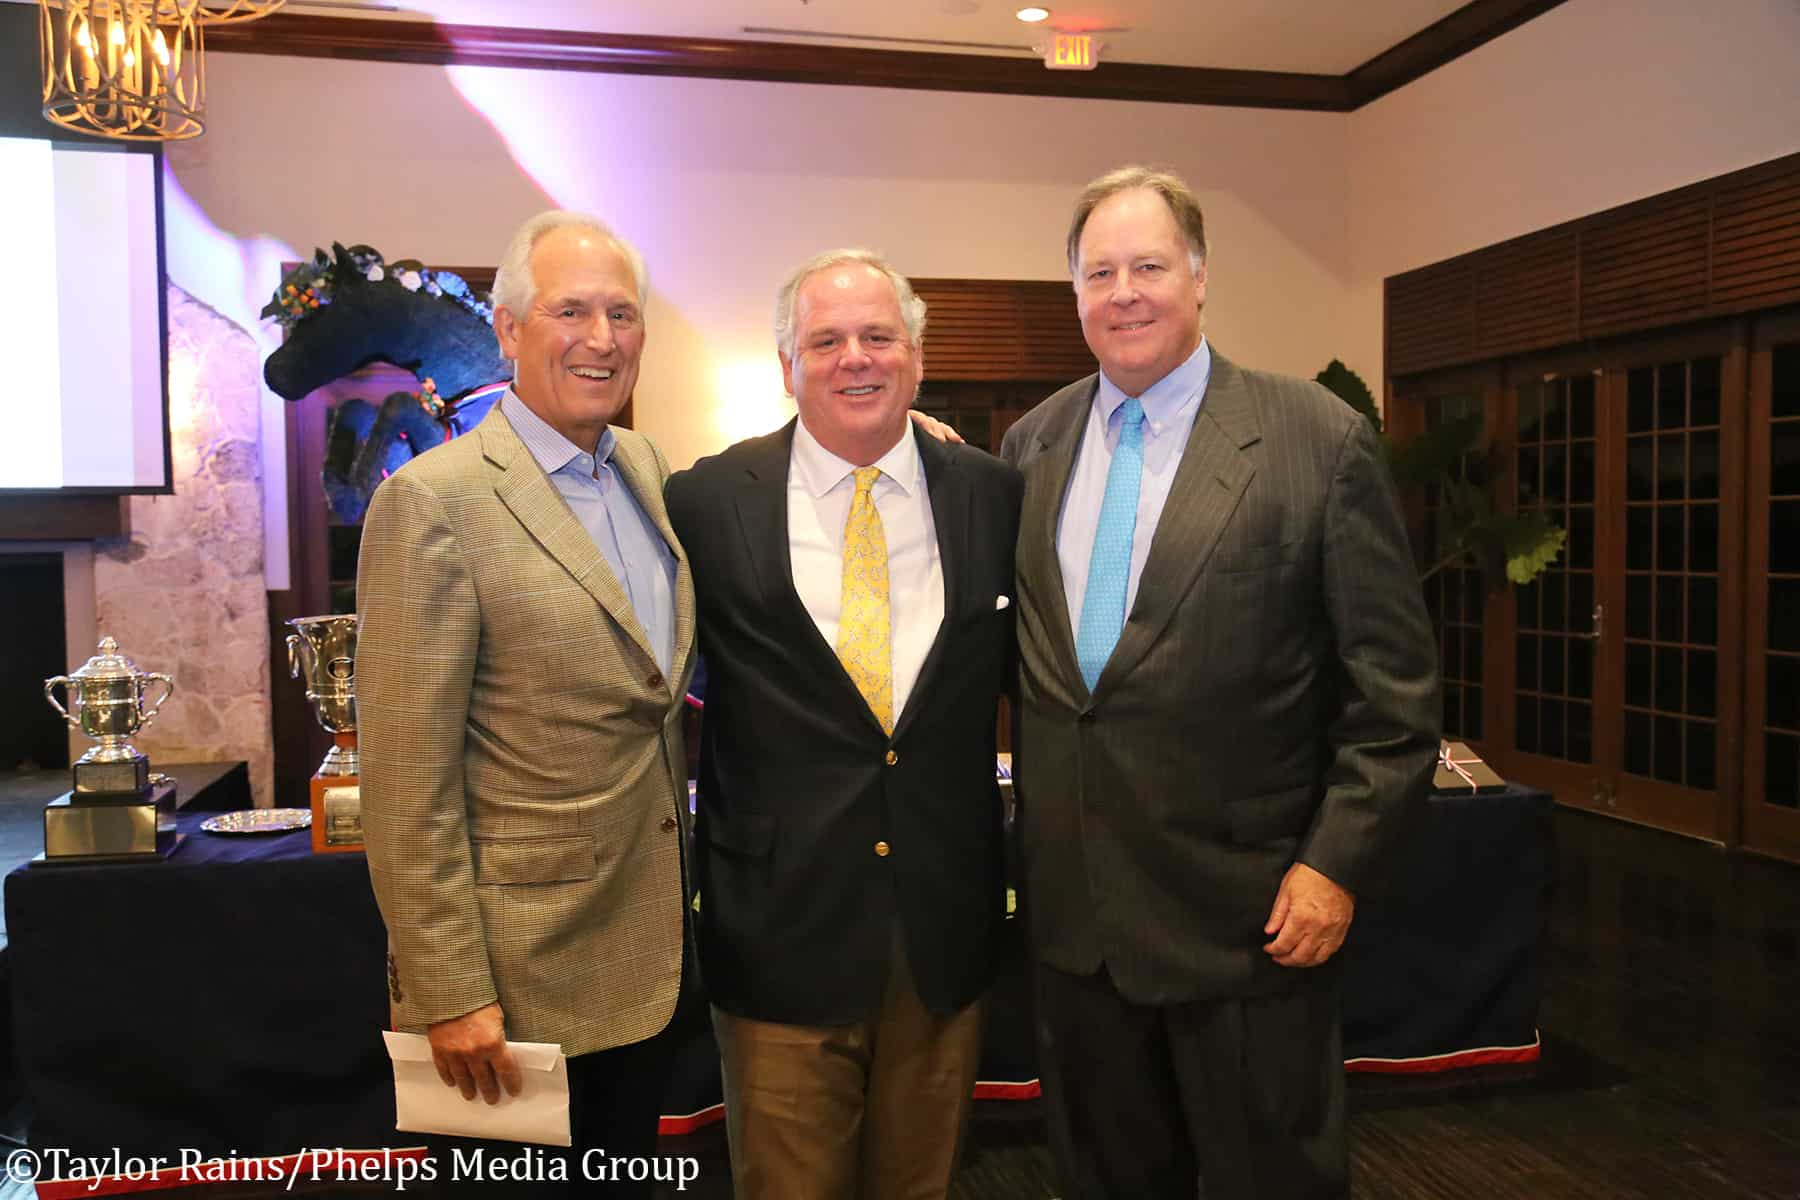 <em>Left to right: USET Foundation President and CEO W. James McNerney, Jr., S. Tucker S. Johnson and USET Foundation Vice President William H. Weeks.</em>